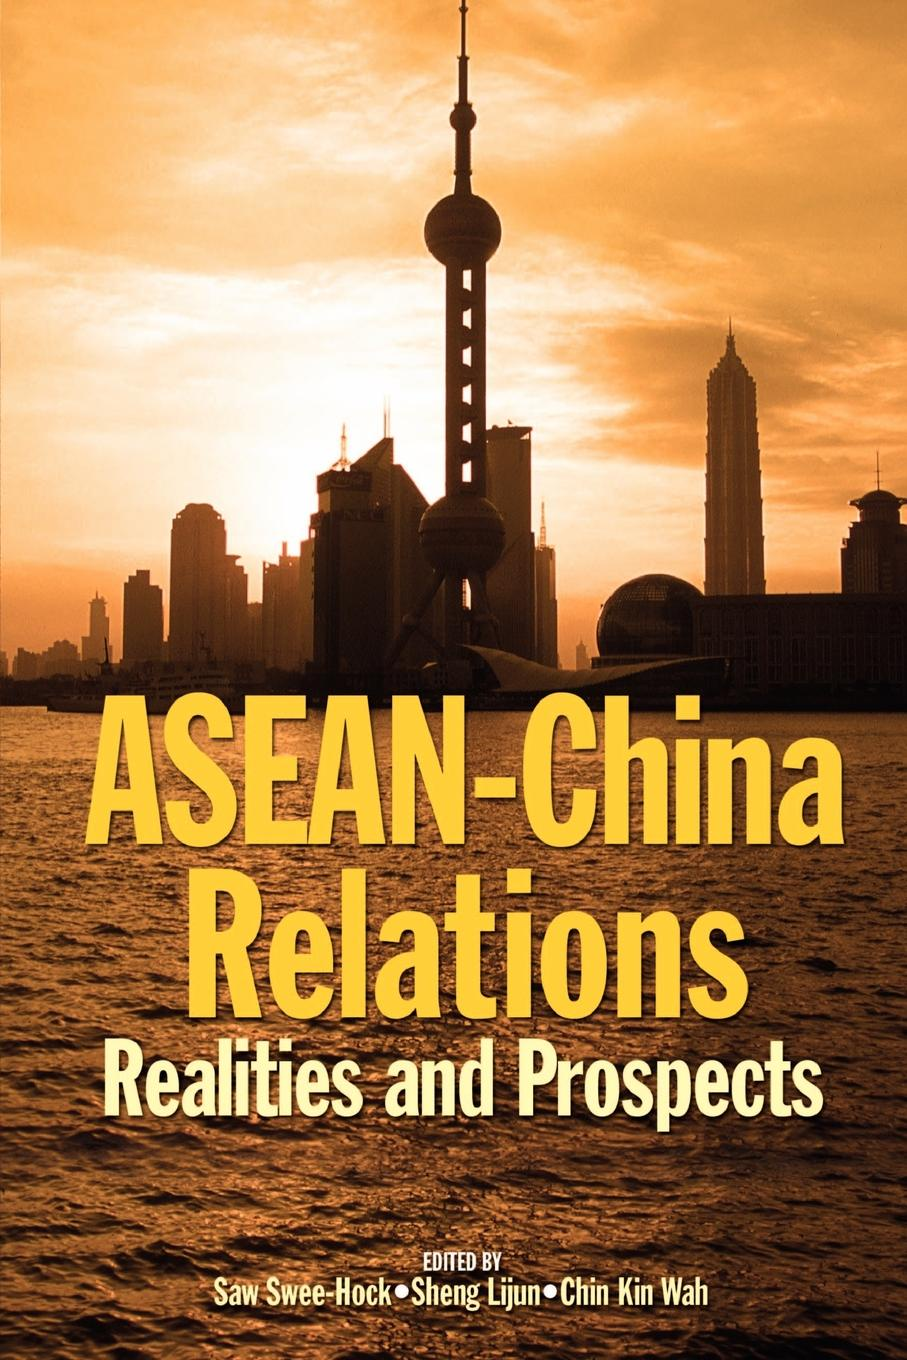 ASEAN-China Relations. Realities and Prospects cnc rapid prototype and mockup made in china